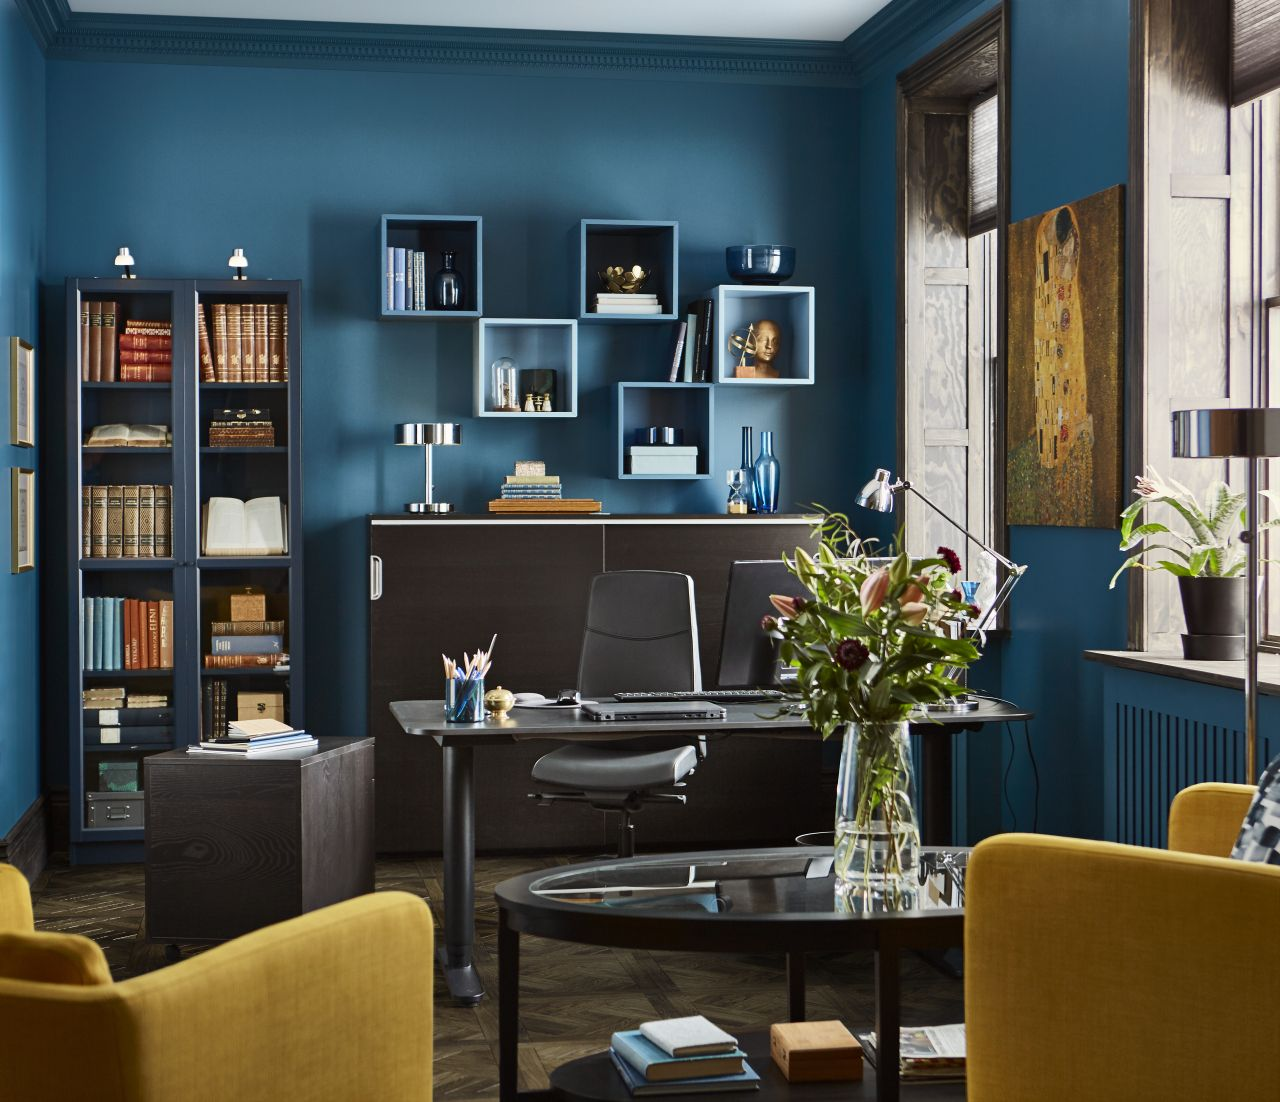 A cosy living room or a well-designed office? We would say ...